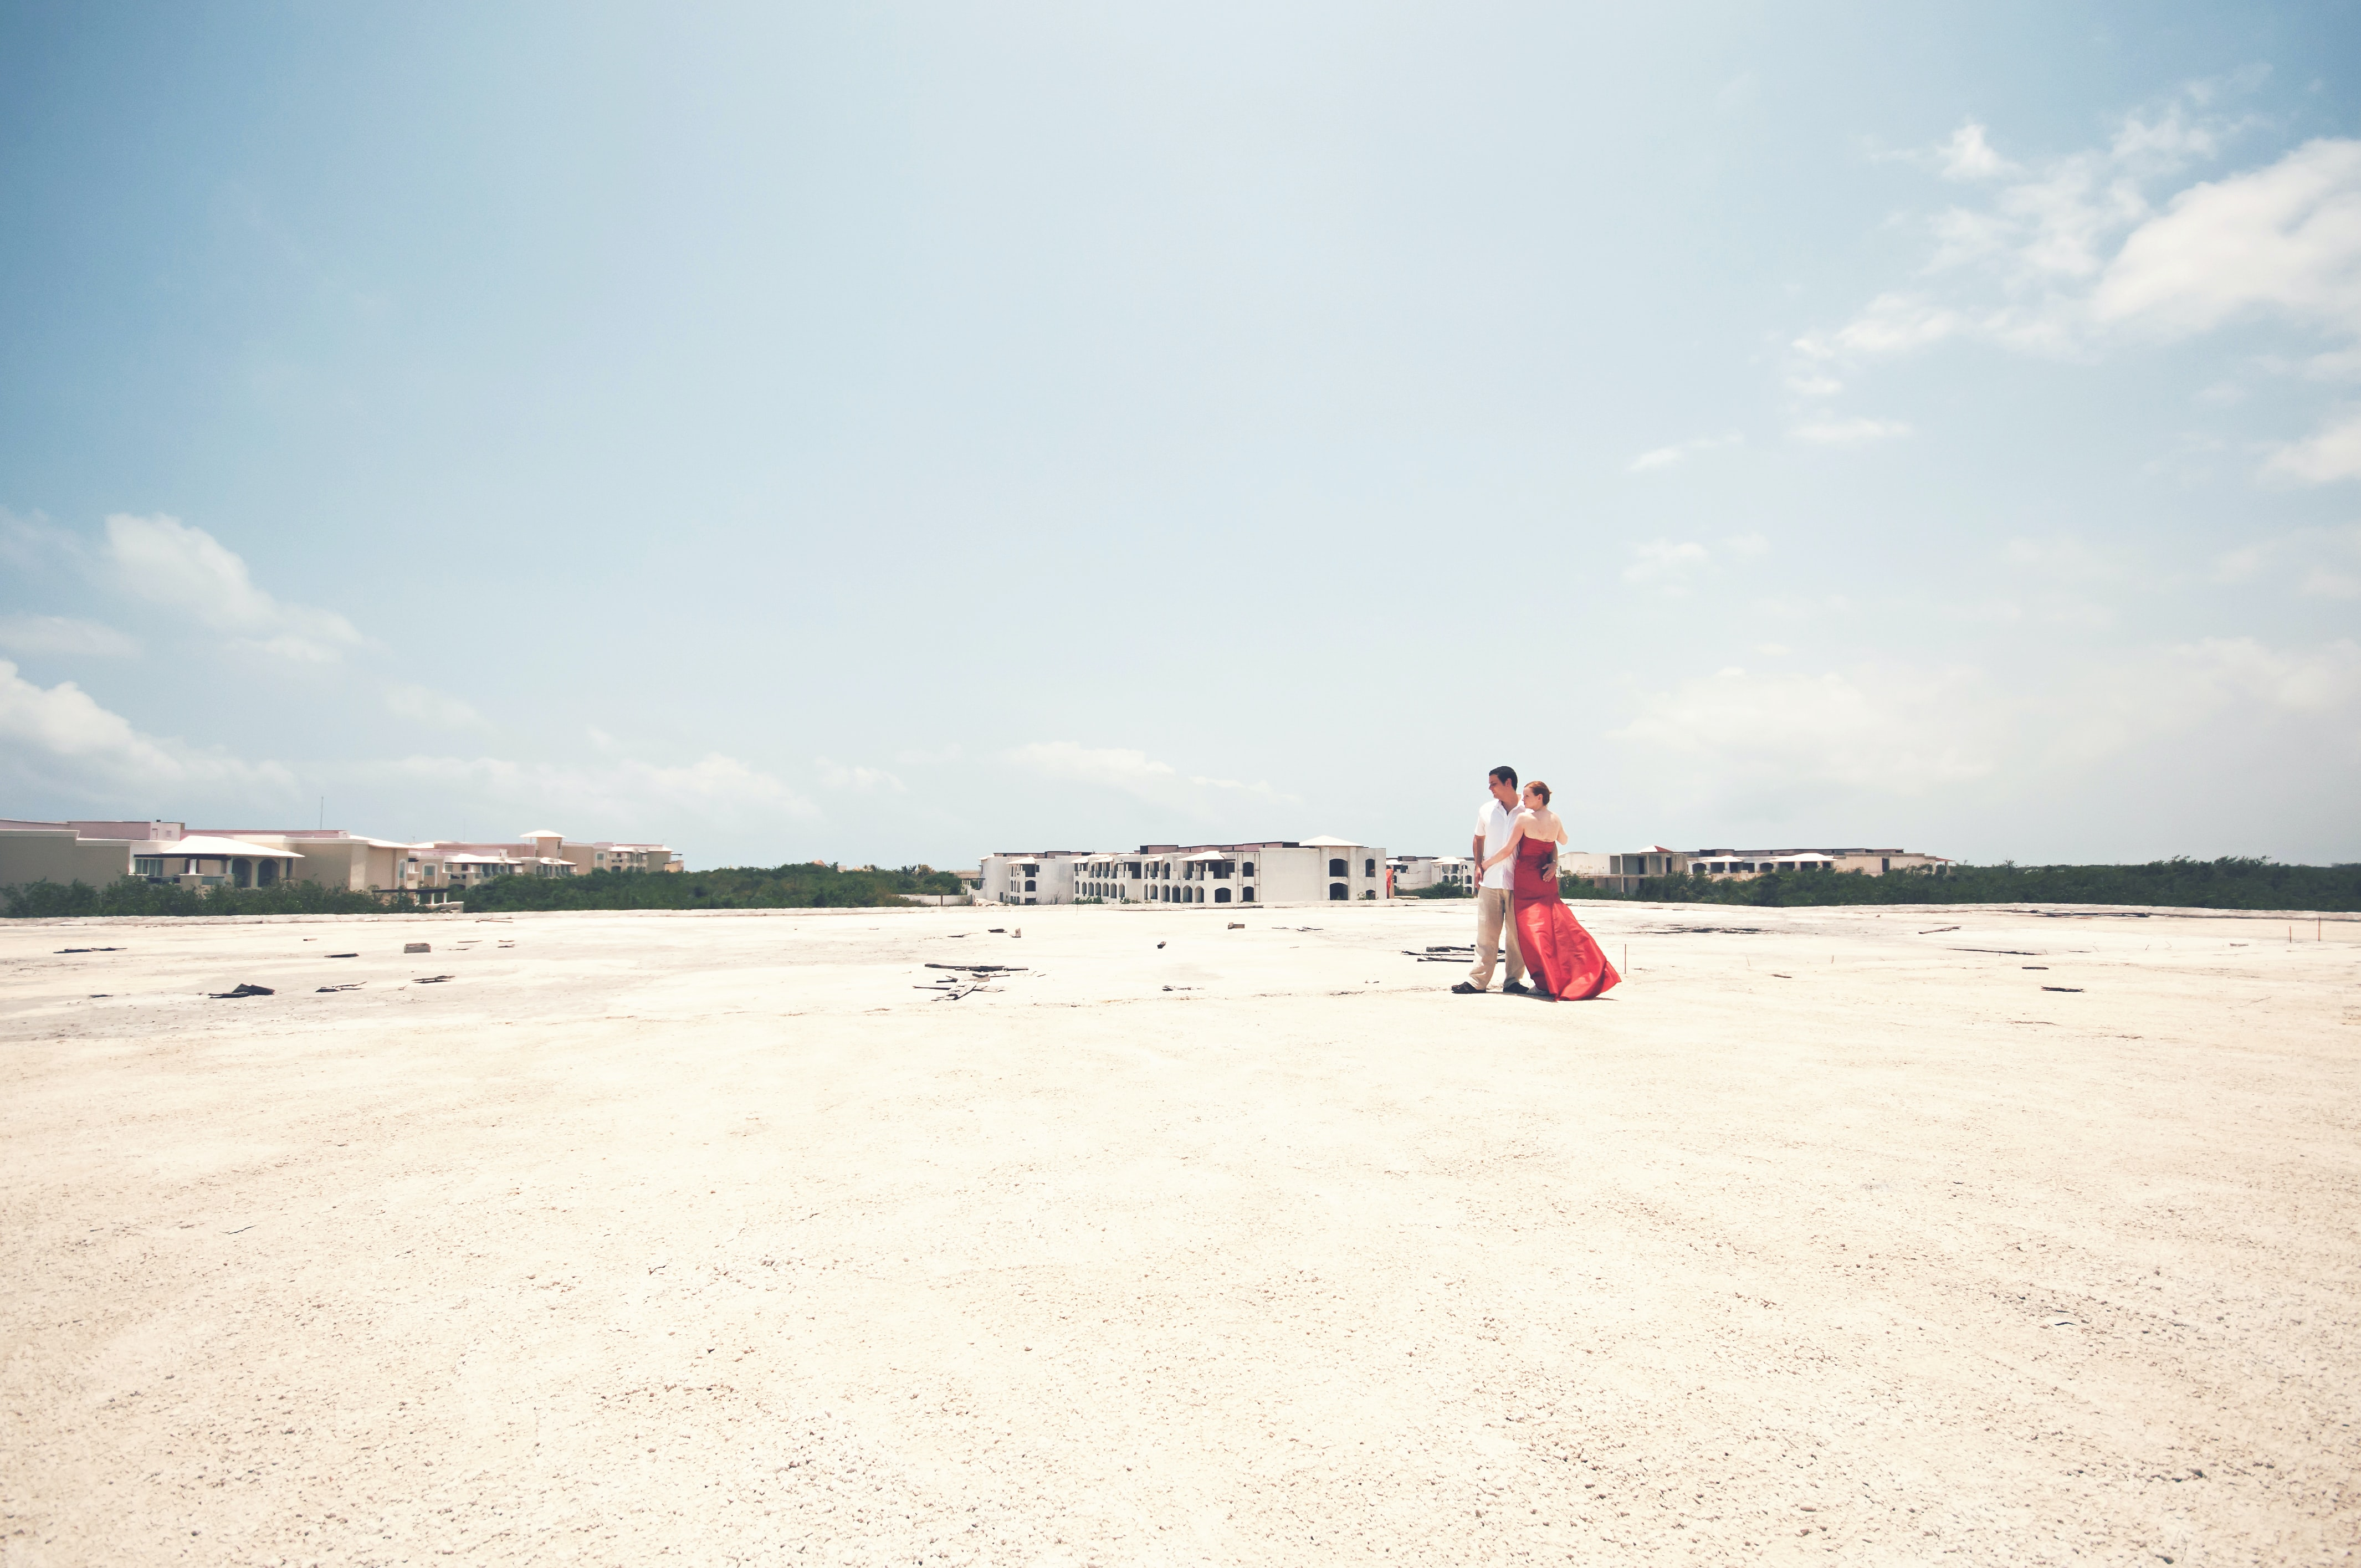 Man in white shirt and a woman in red dress on the sand beach